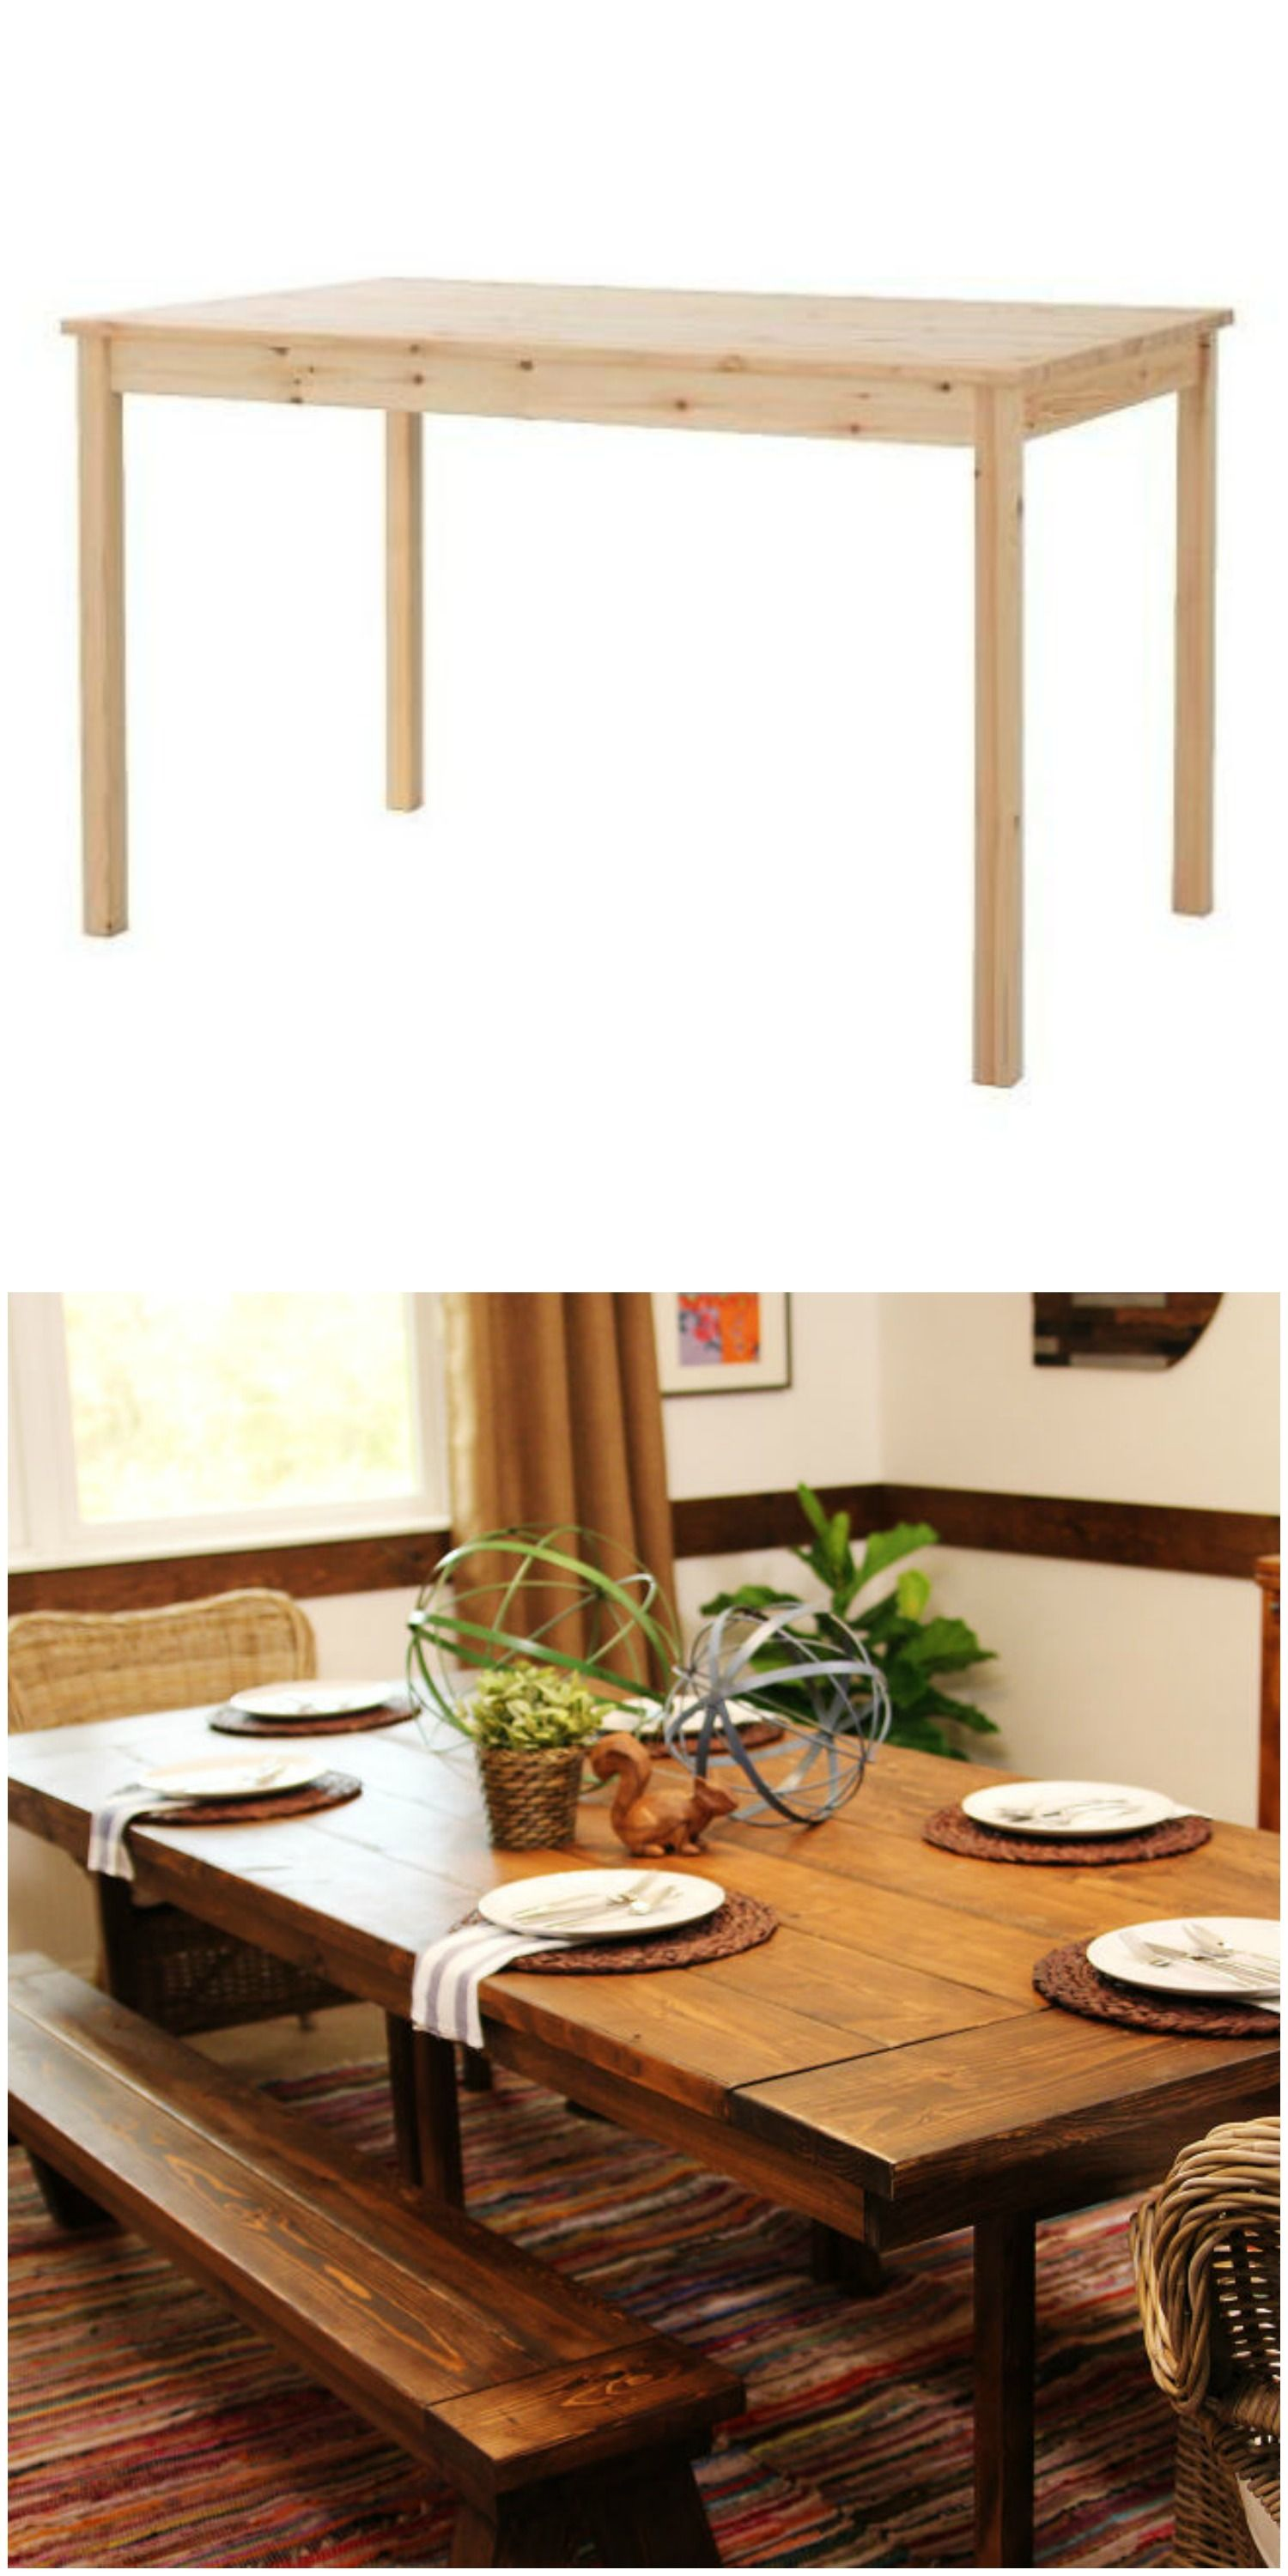 These 35 Ikea Product Hacks Are So Brilliant You Ll Wish You Thought Of Them Ikea Dining Ikea Dining Table Ikea Dining Room